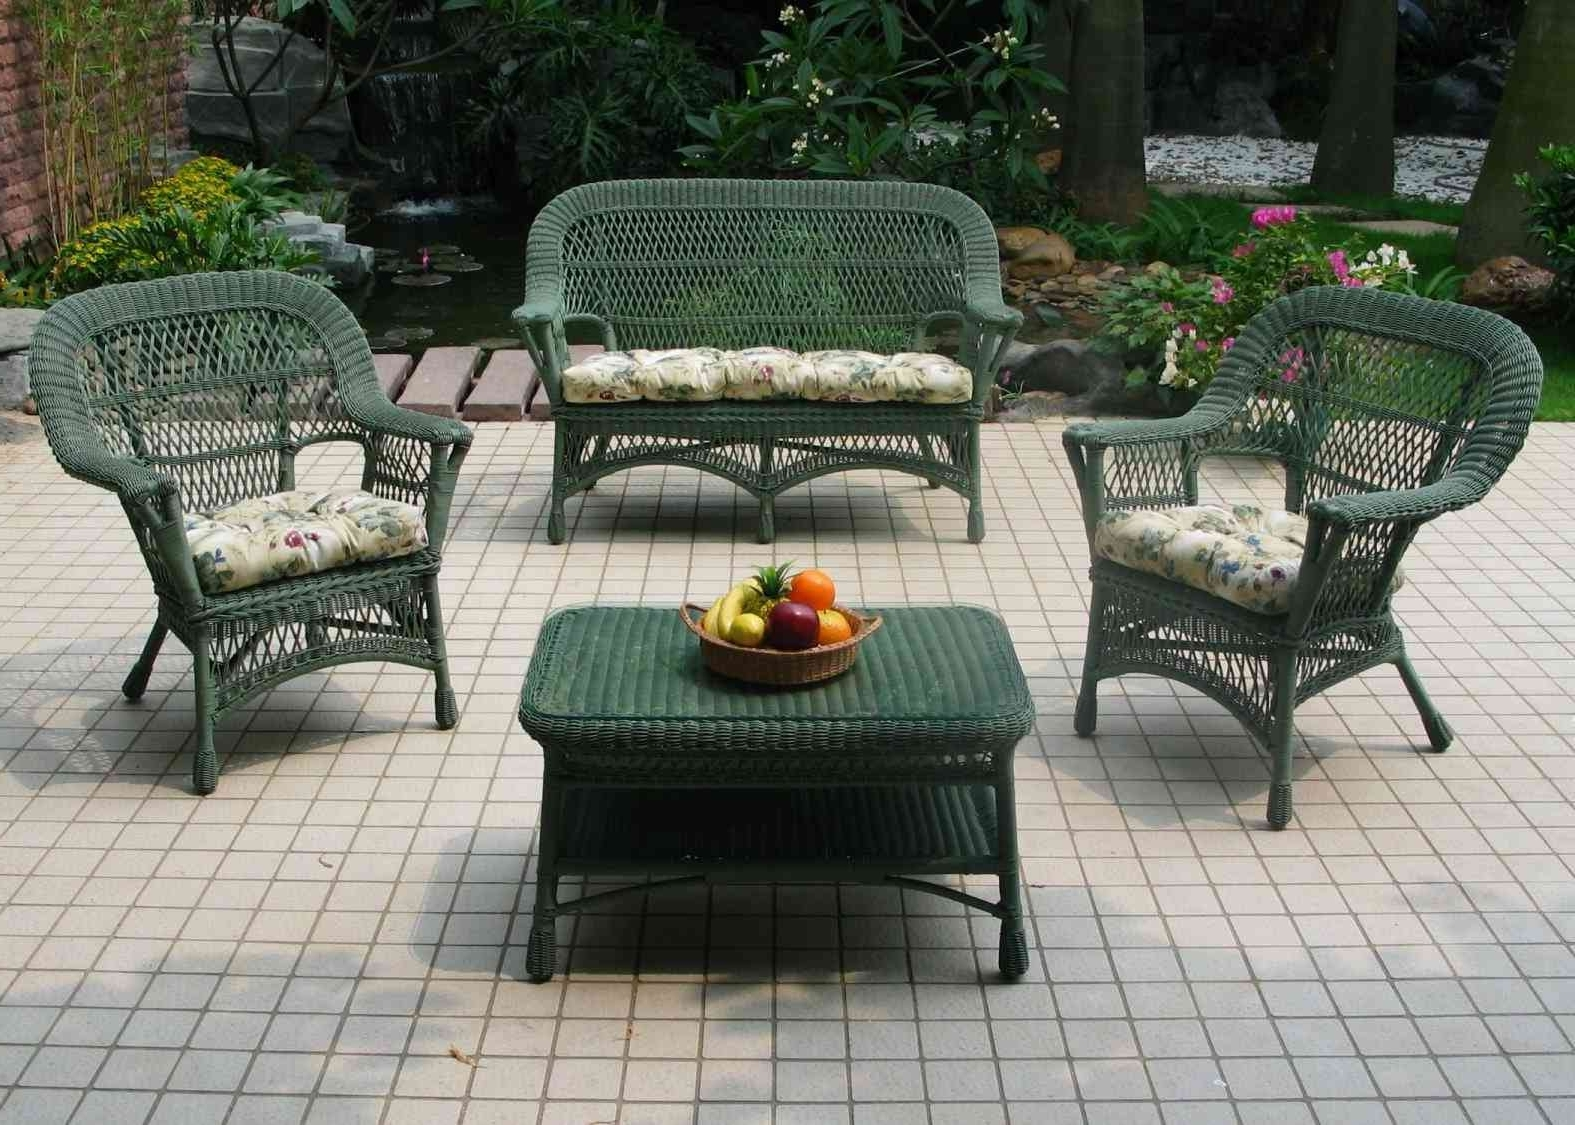 Nfm Patio Conversation Sets With Regard To Best And Newest Small Outdoor Wicker Patio Furniture Ideas : Sathoud Decors – Repair (View 4 of 15)